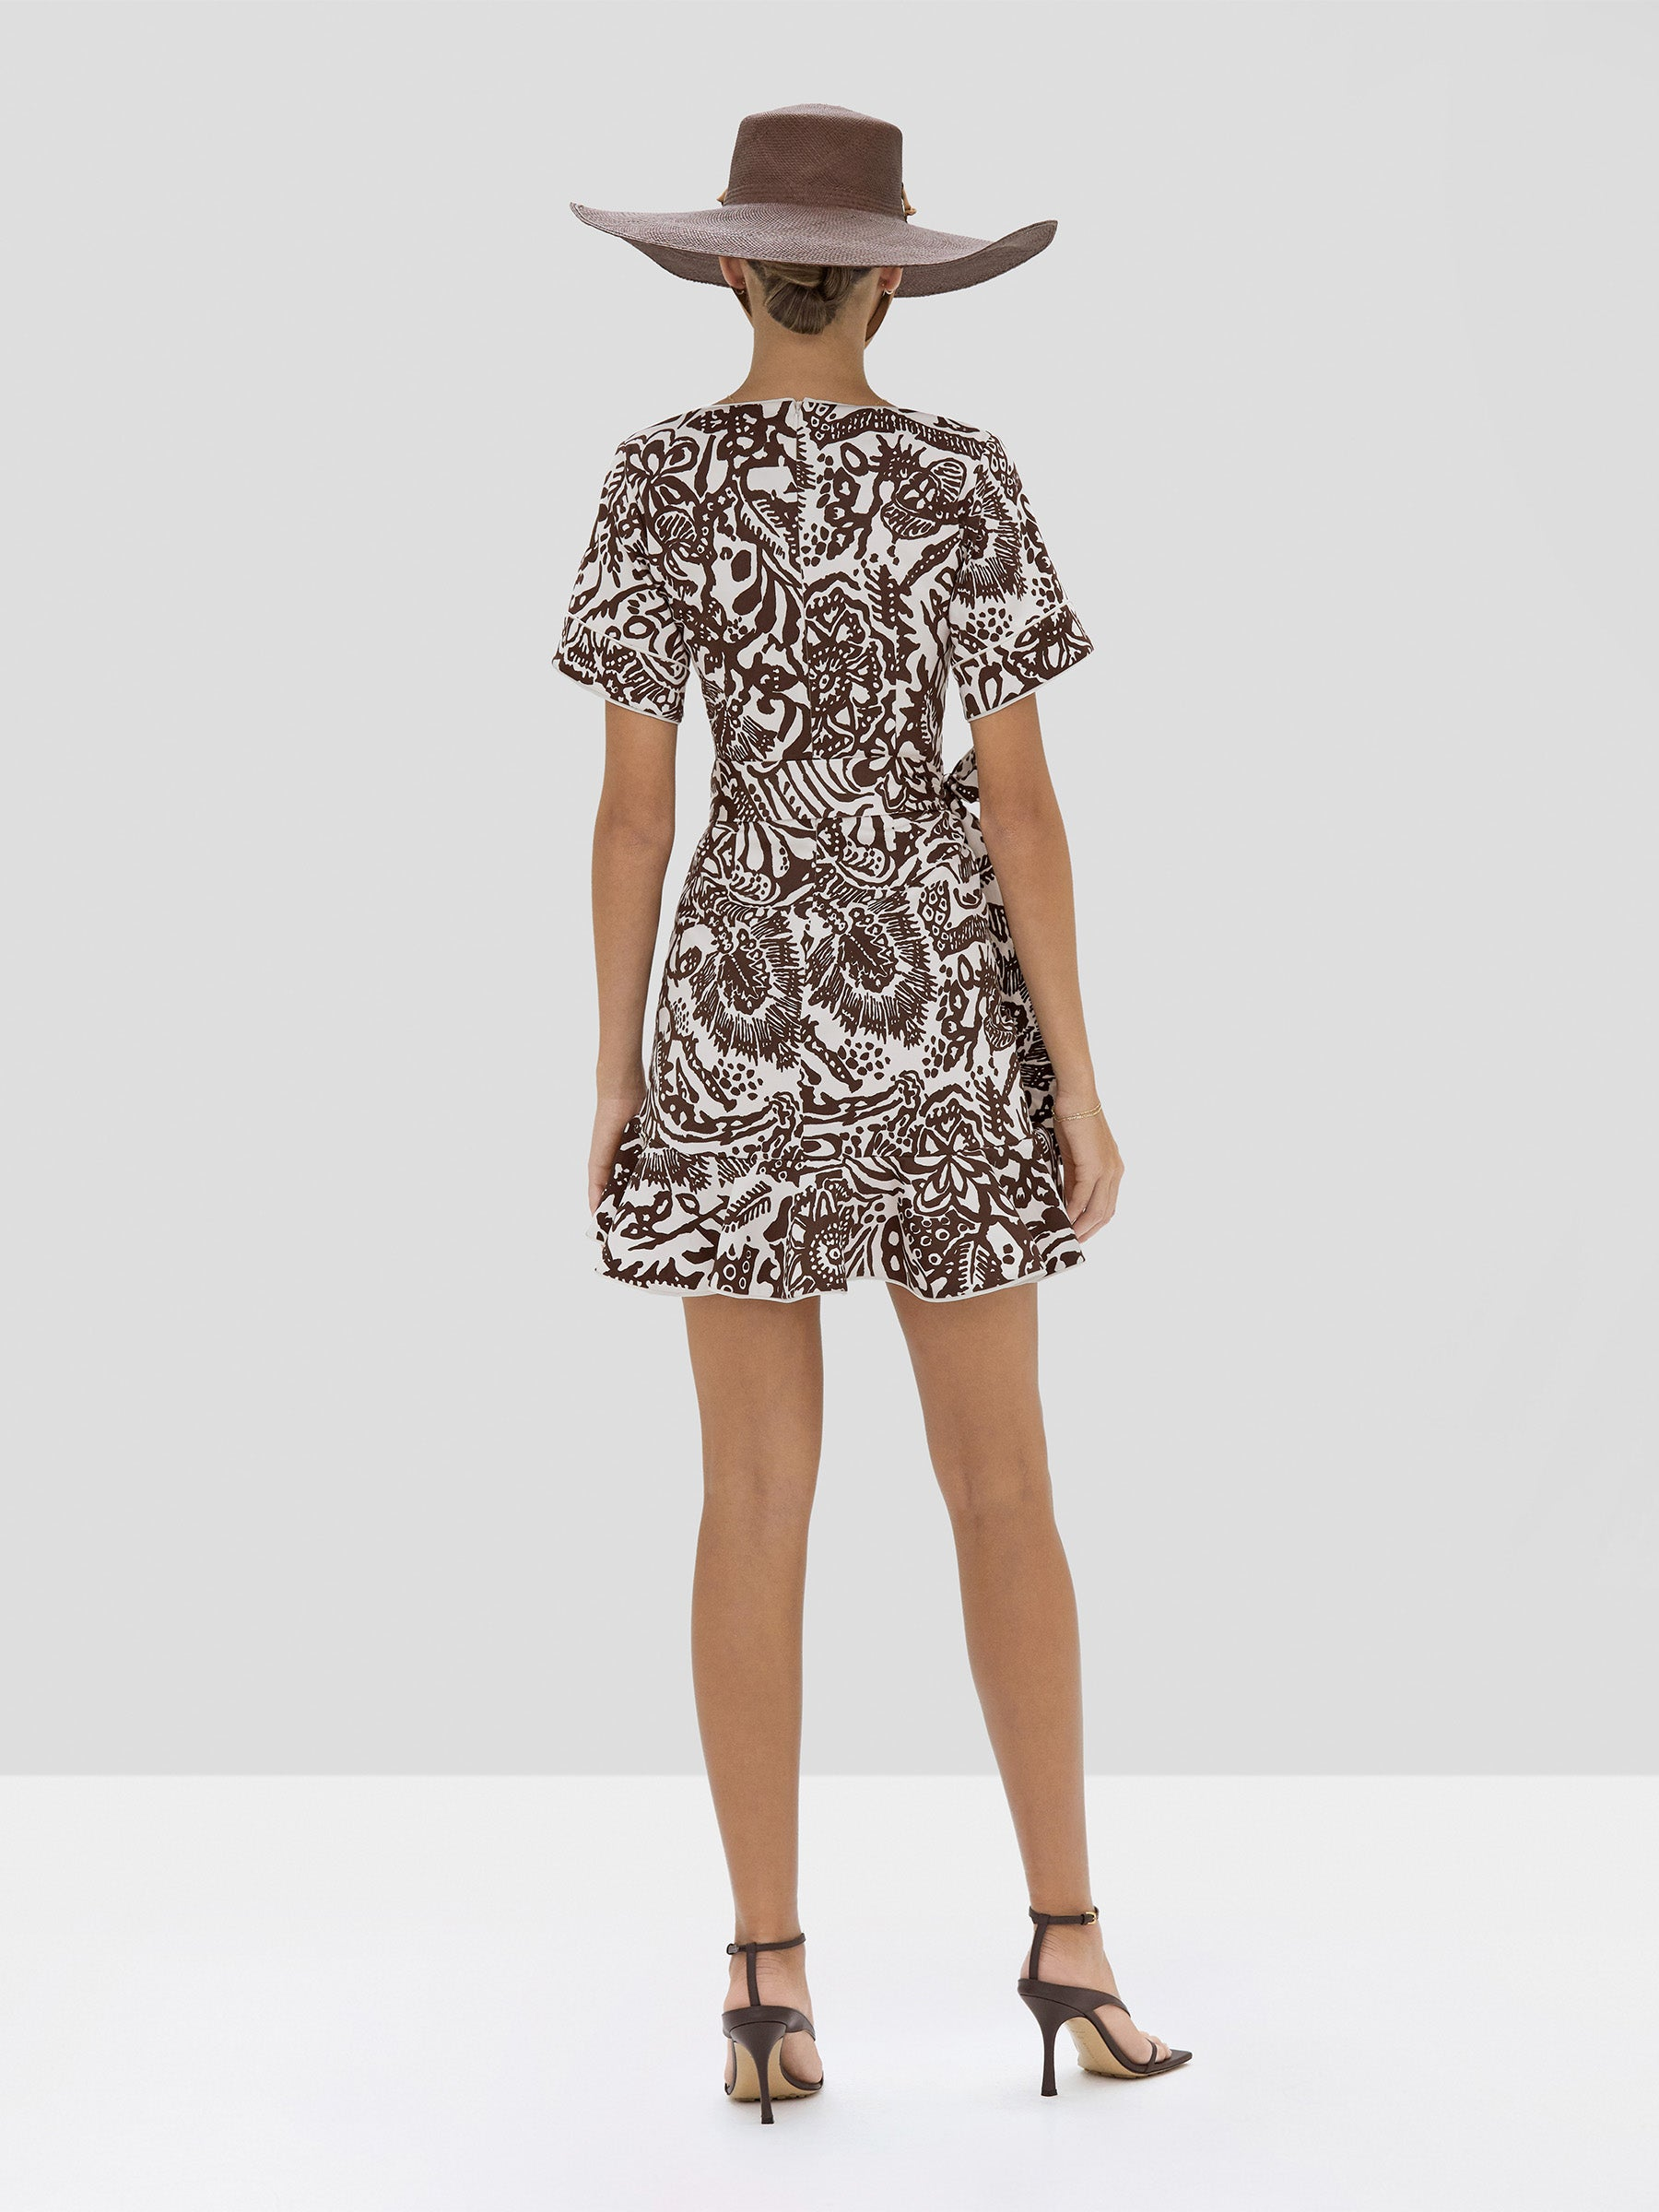 Alexis Berenna Dress in Tropical Brown from the Spring Summer 2020 Collection - Rear View